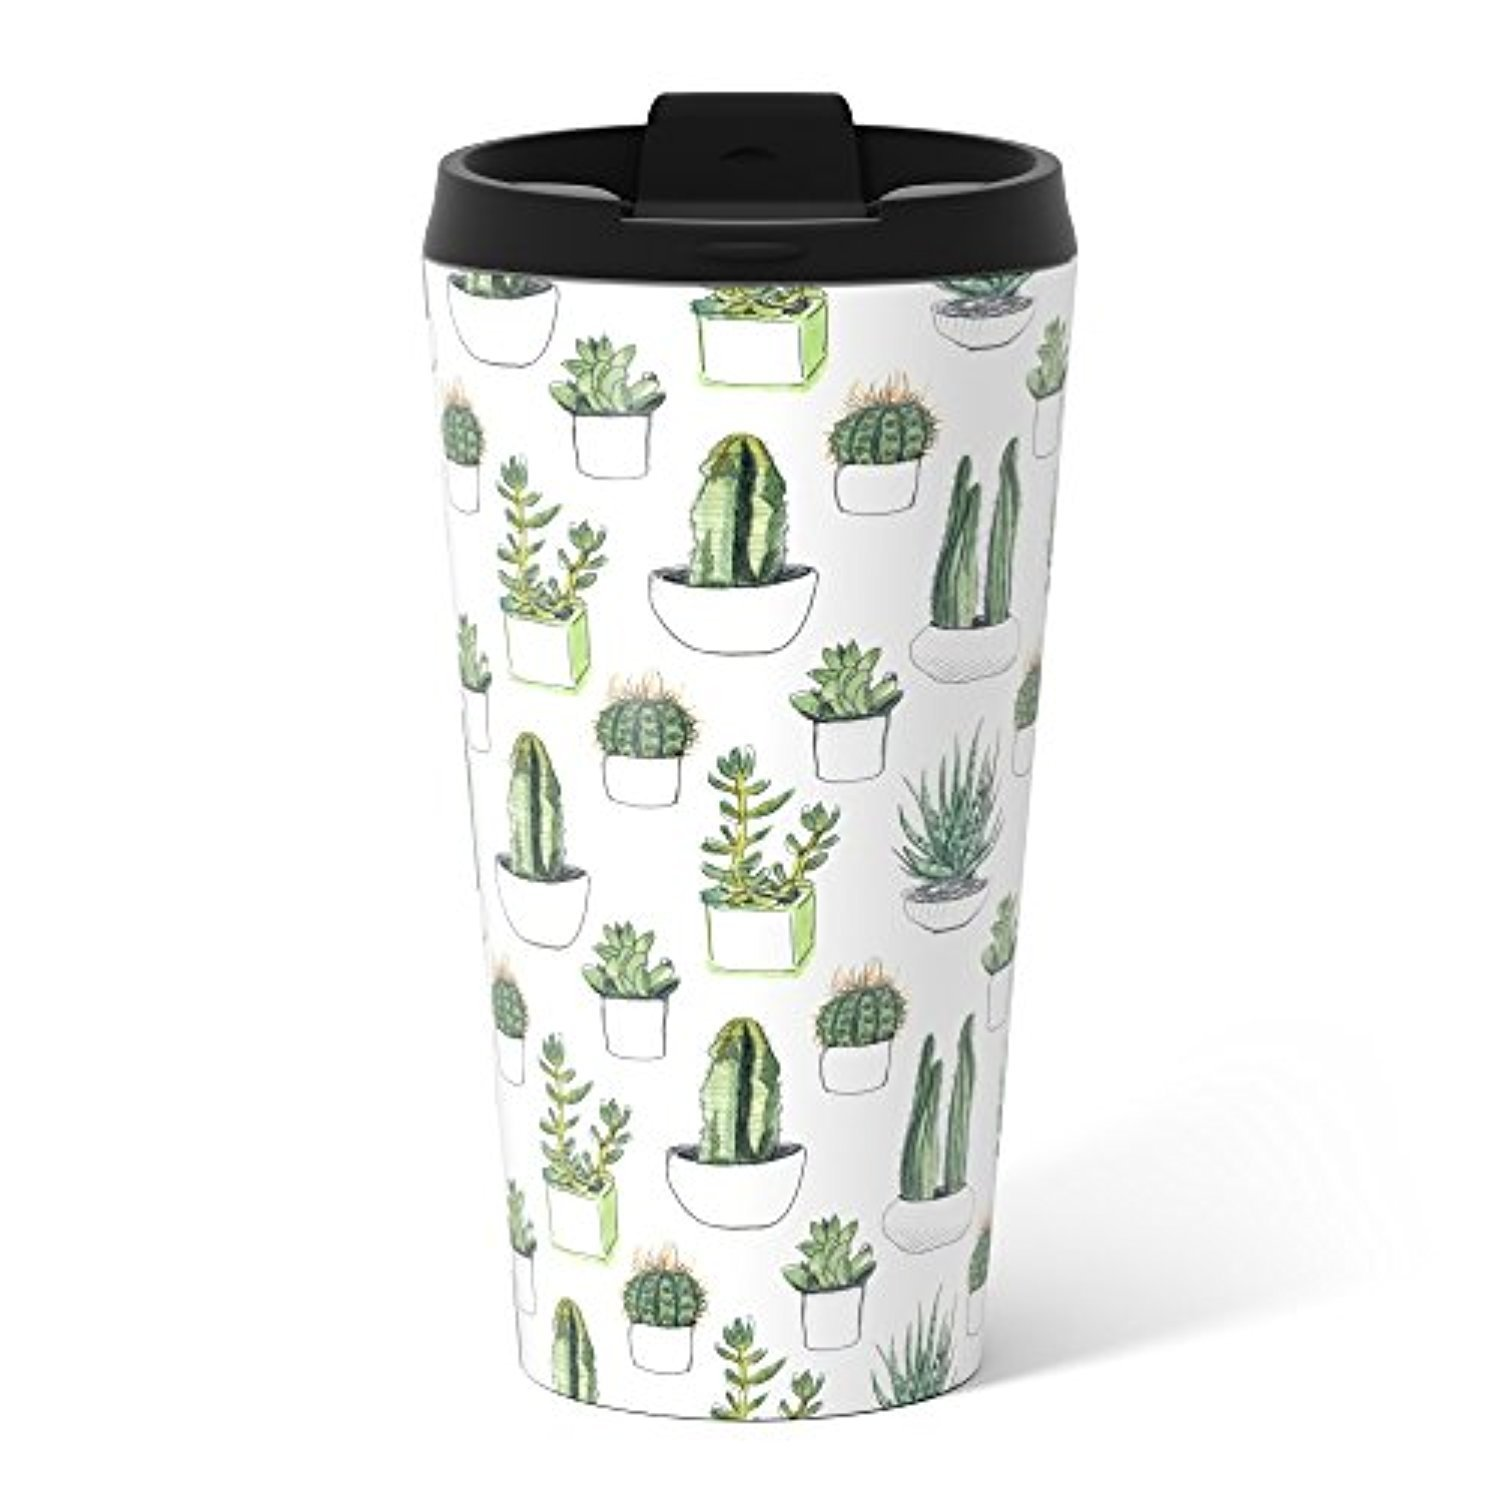 ◎送料込み◎ Society6 Watercolour Cacti And Succulent Metal